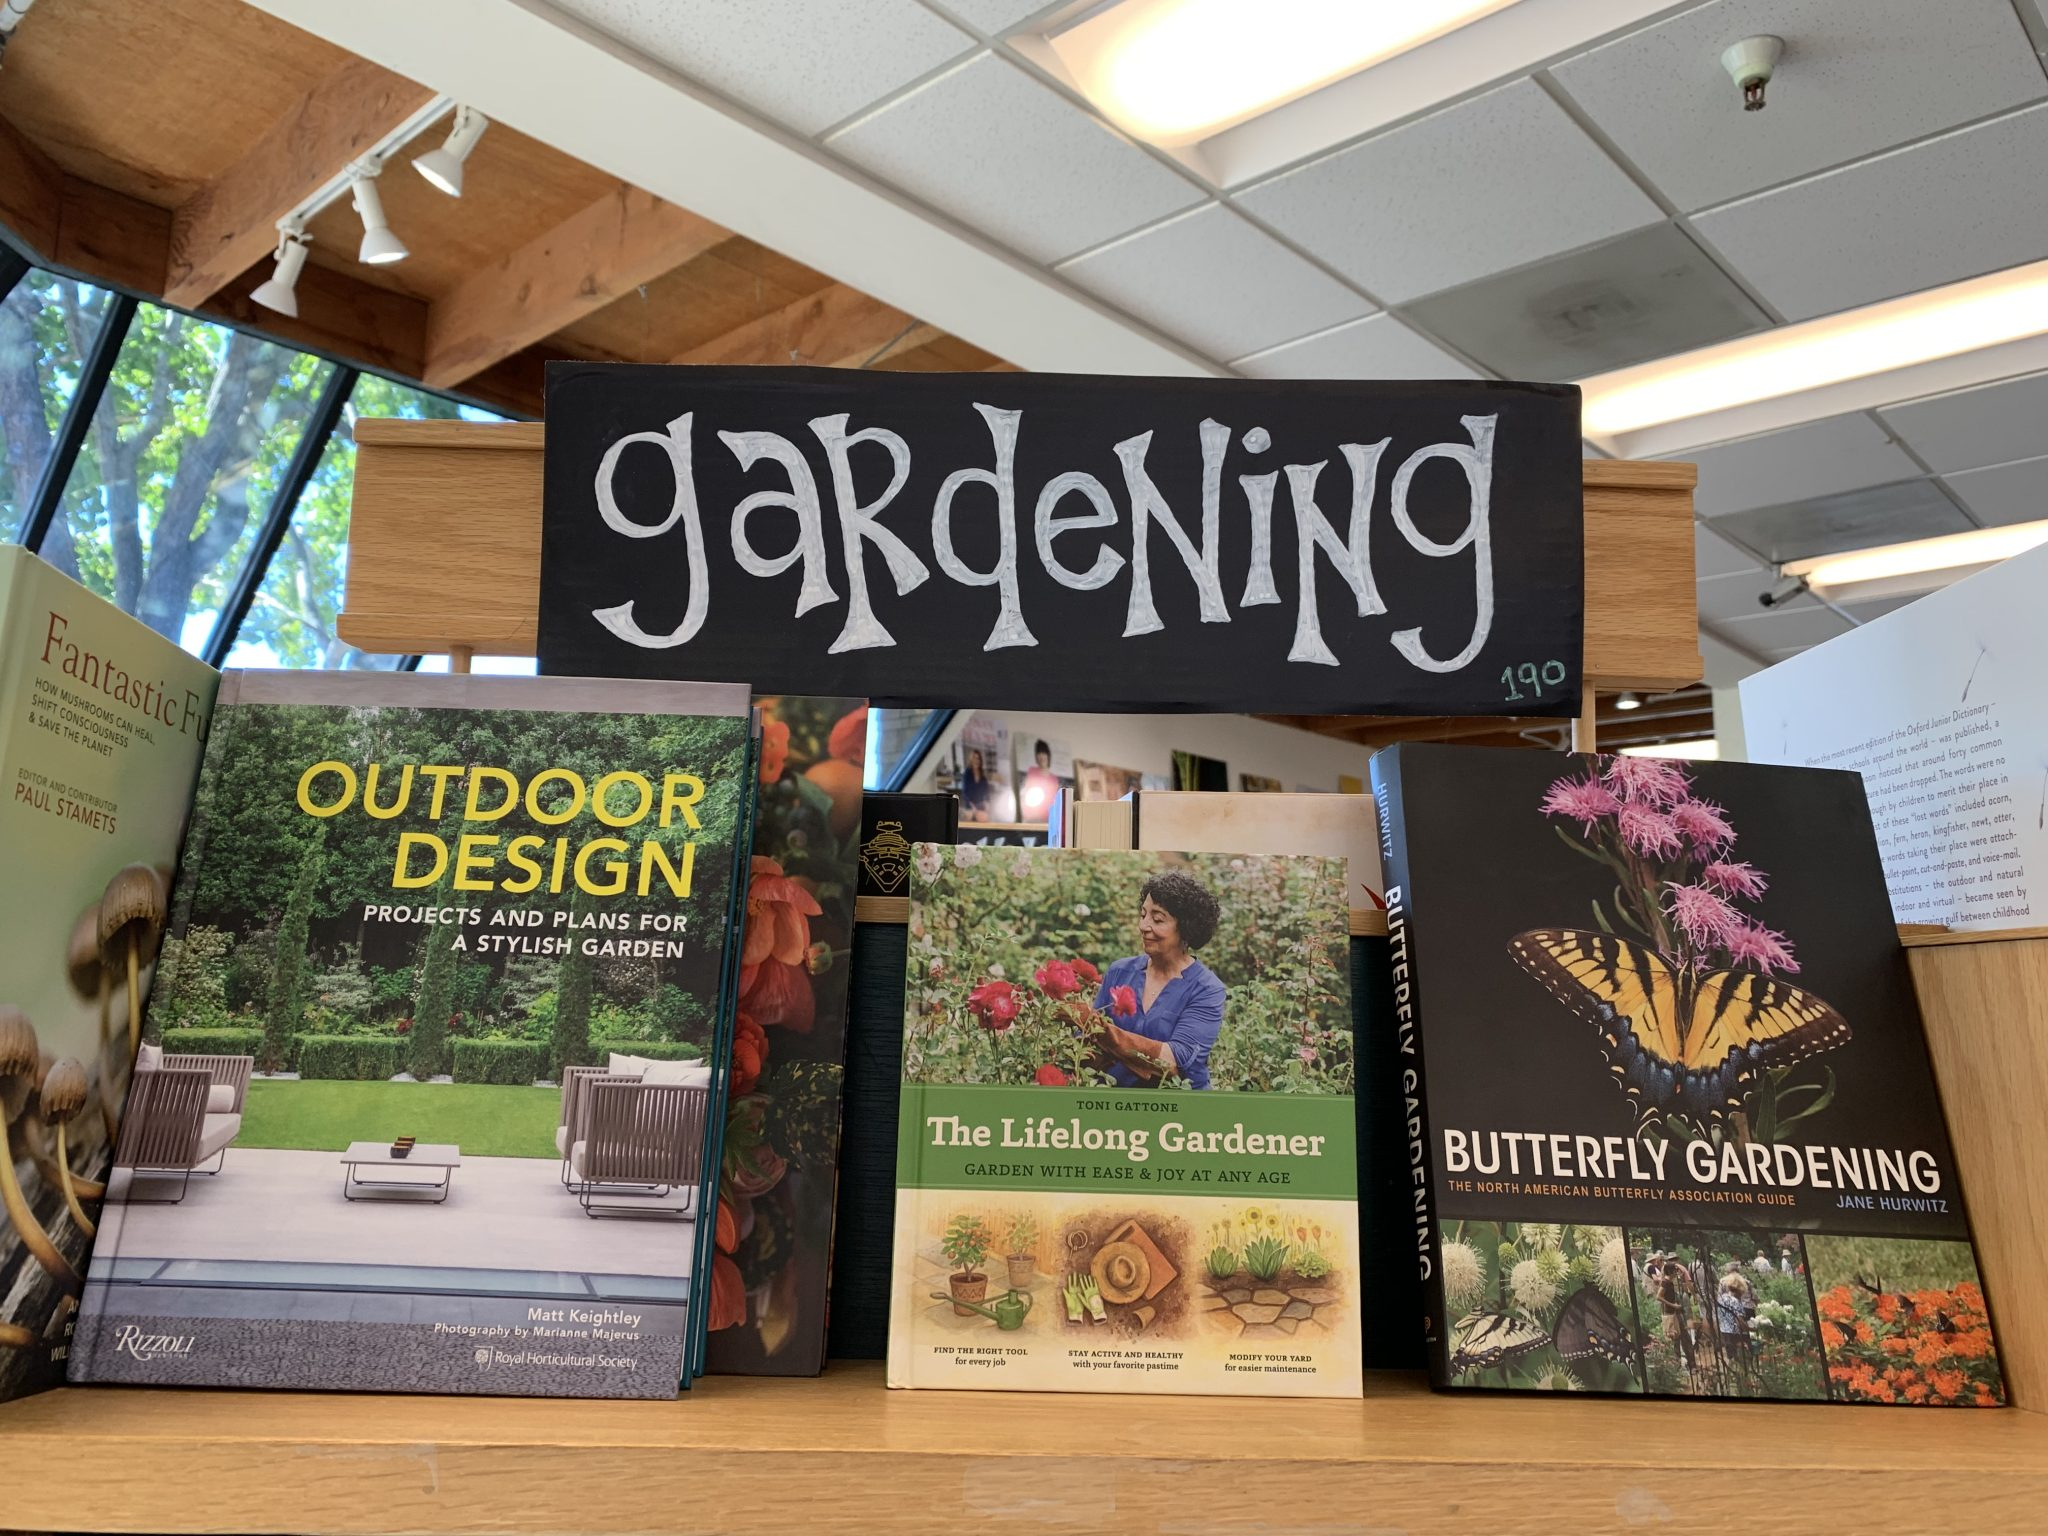 The Lifelong Gardener is displayed among other prominent gardening expertise books at The Book Passage in Corte Madera.